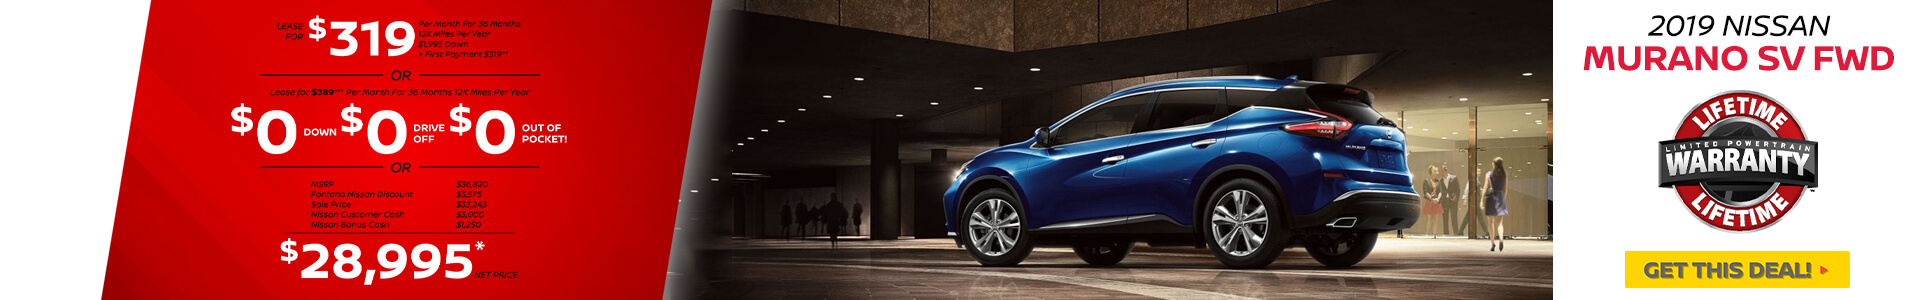 Nissan Murano $319 Lease